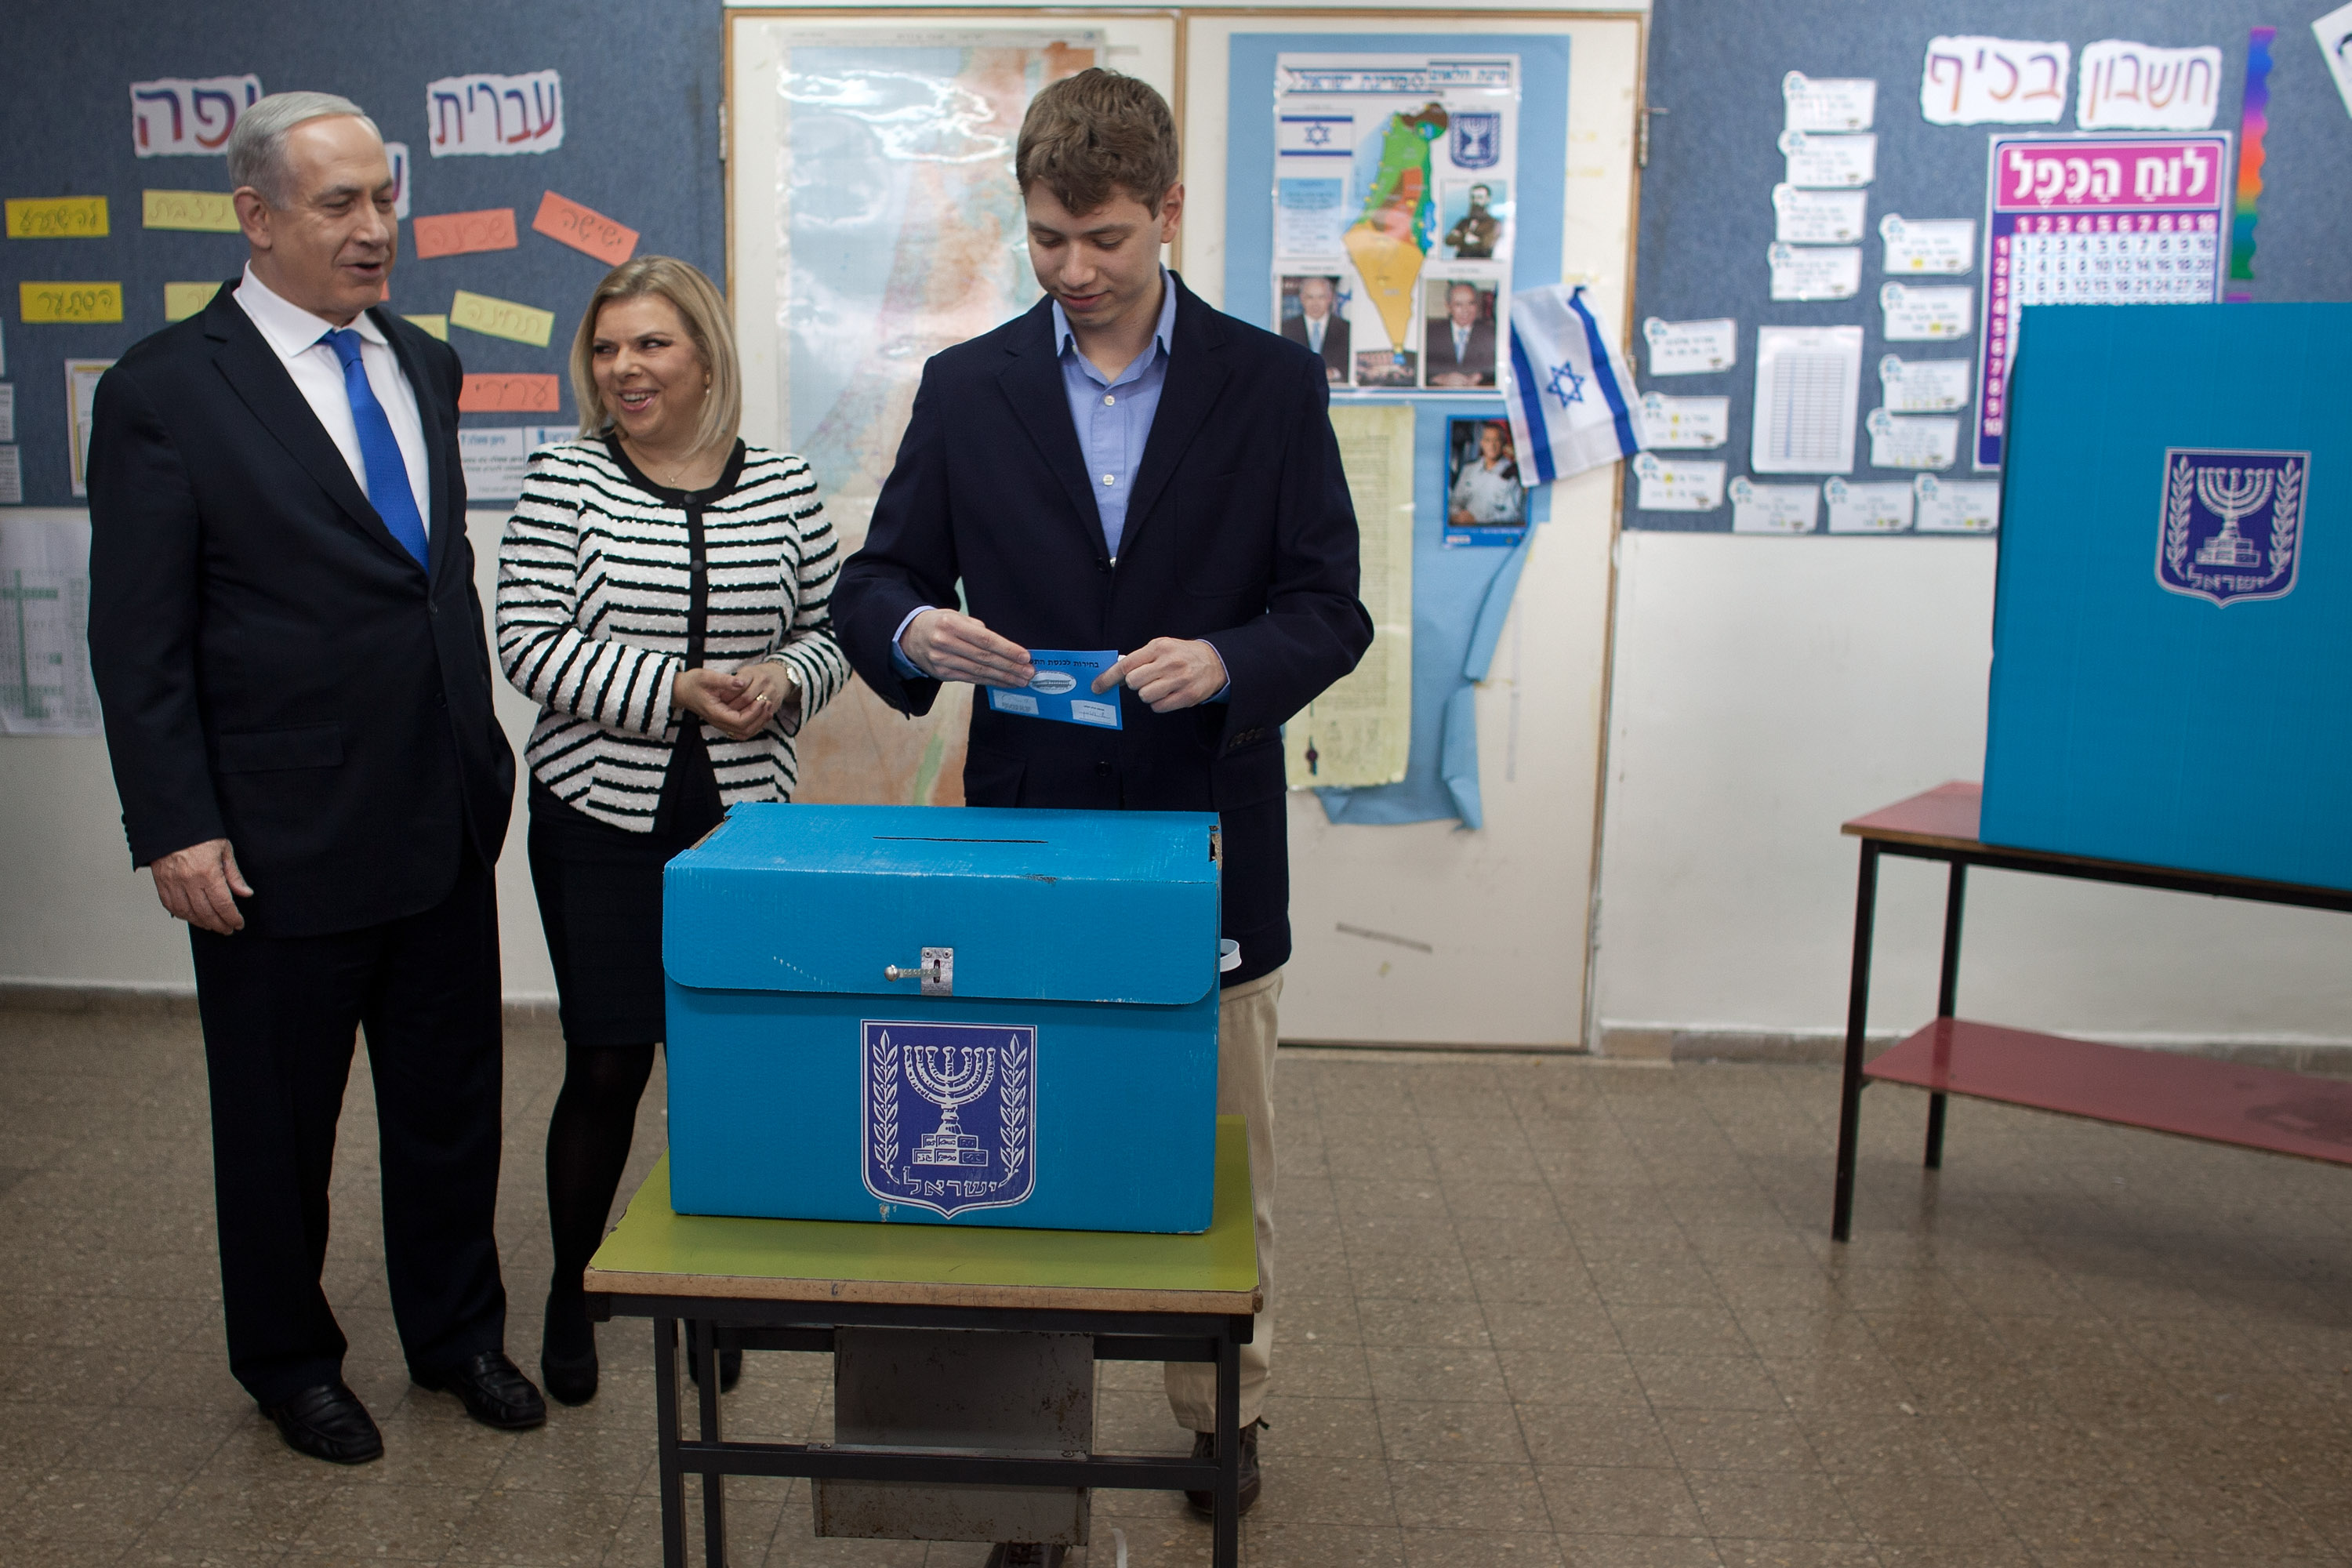 Israeli Prime Minister Benjamin Netanyahu watches his son Yair Netanyahu cast his ballot with by wife Sara Netanyahu at a polling station on election day on January 22, 2013, in Jerusalem, Israel. (Getty Images)